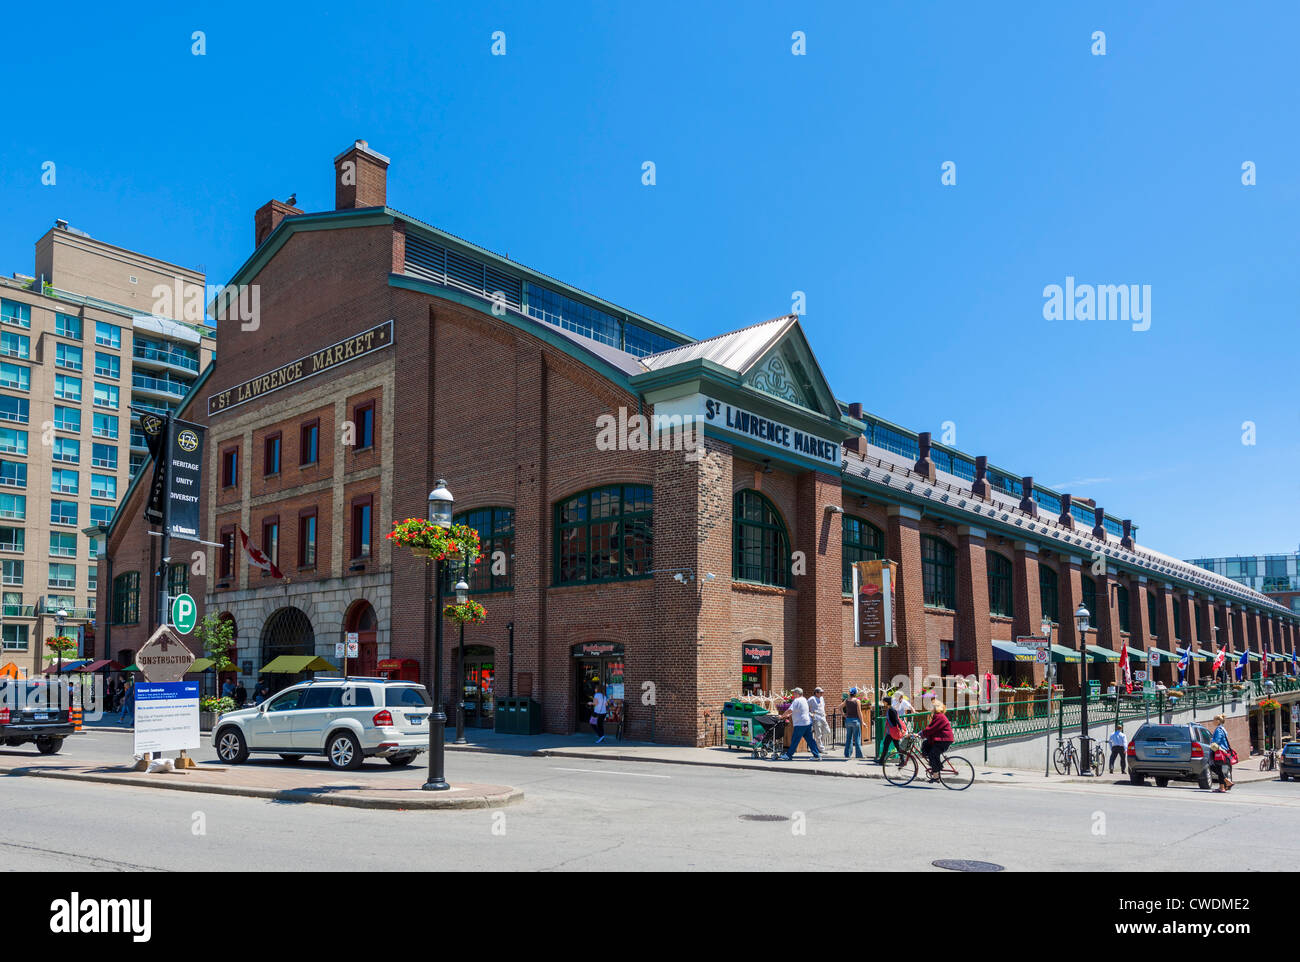 Exterior of St Lawrence Market looking towards downtown, Toronto, Ontario, Canada - Stock Image